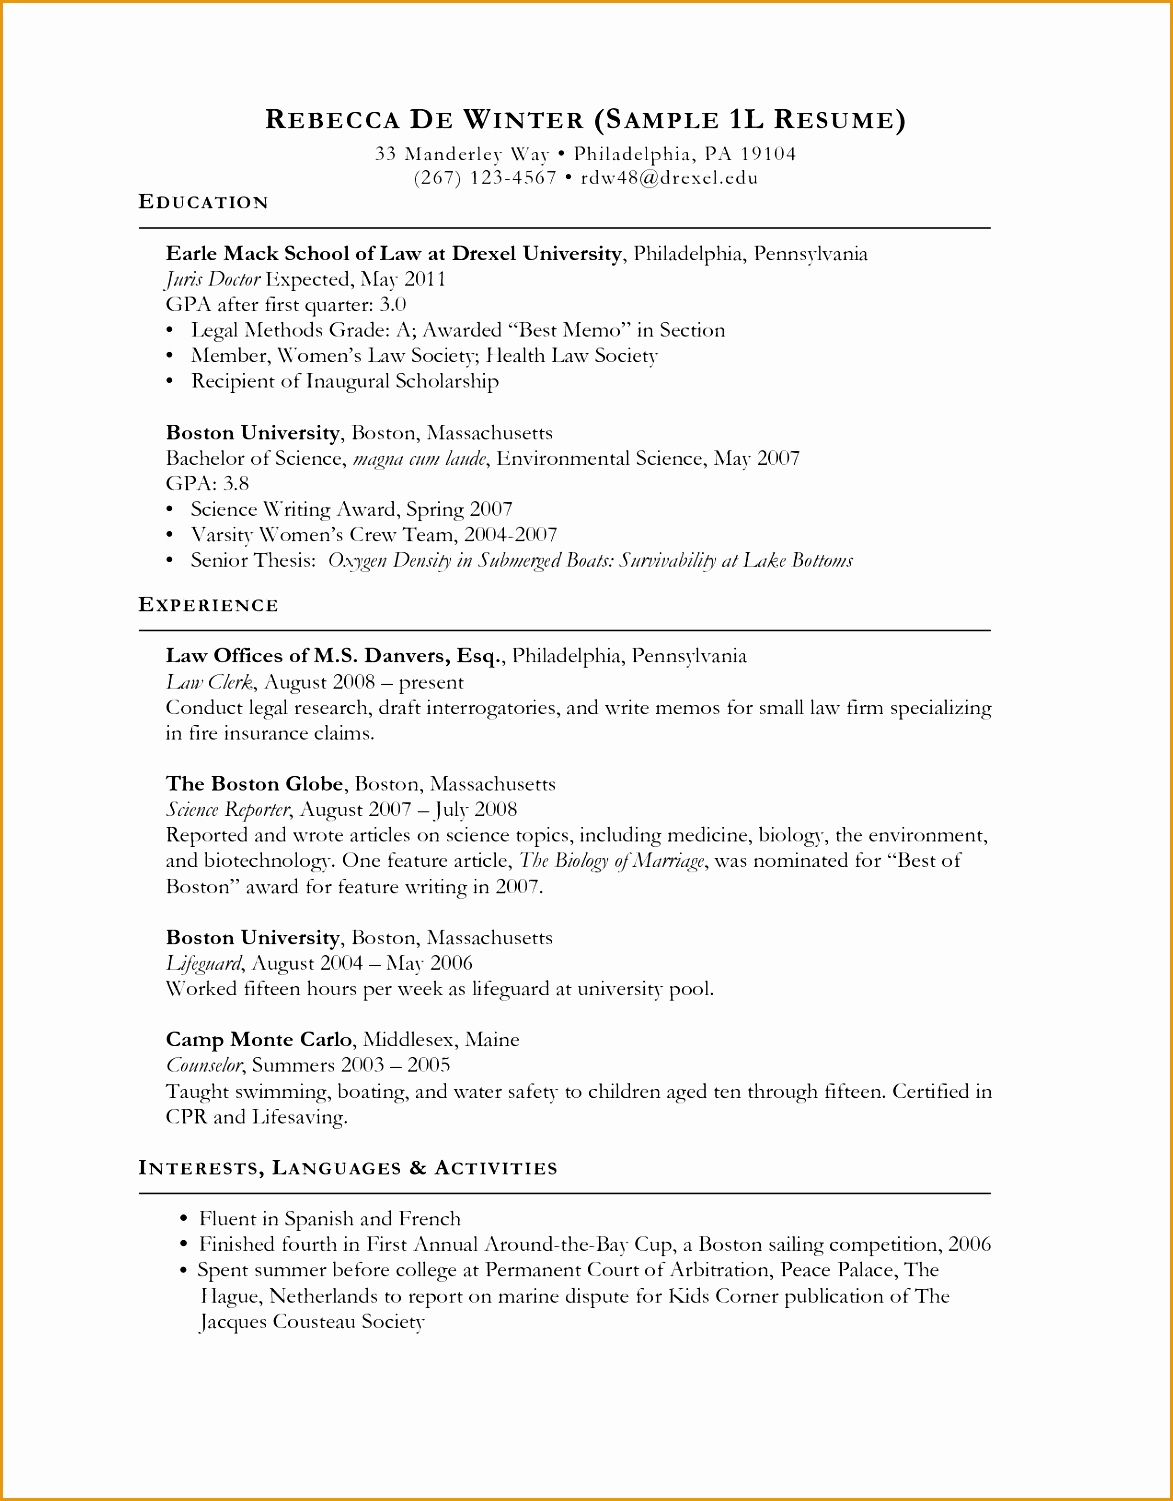 Law Resume Resume Sample Format Law School Resume Sample And Get Ideas To Create Your Resume15011173